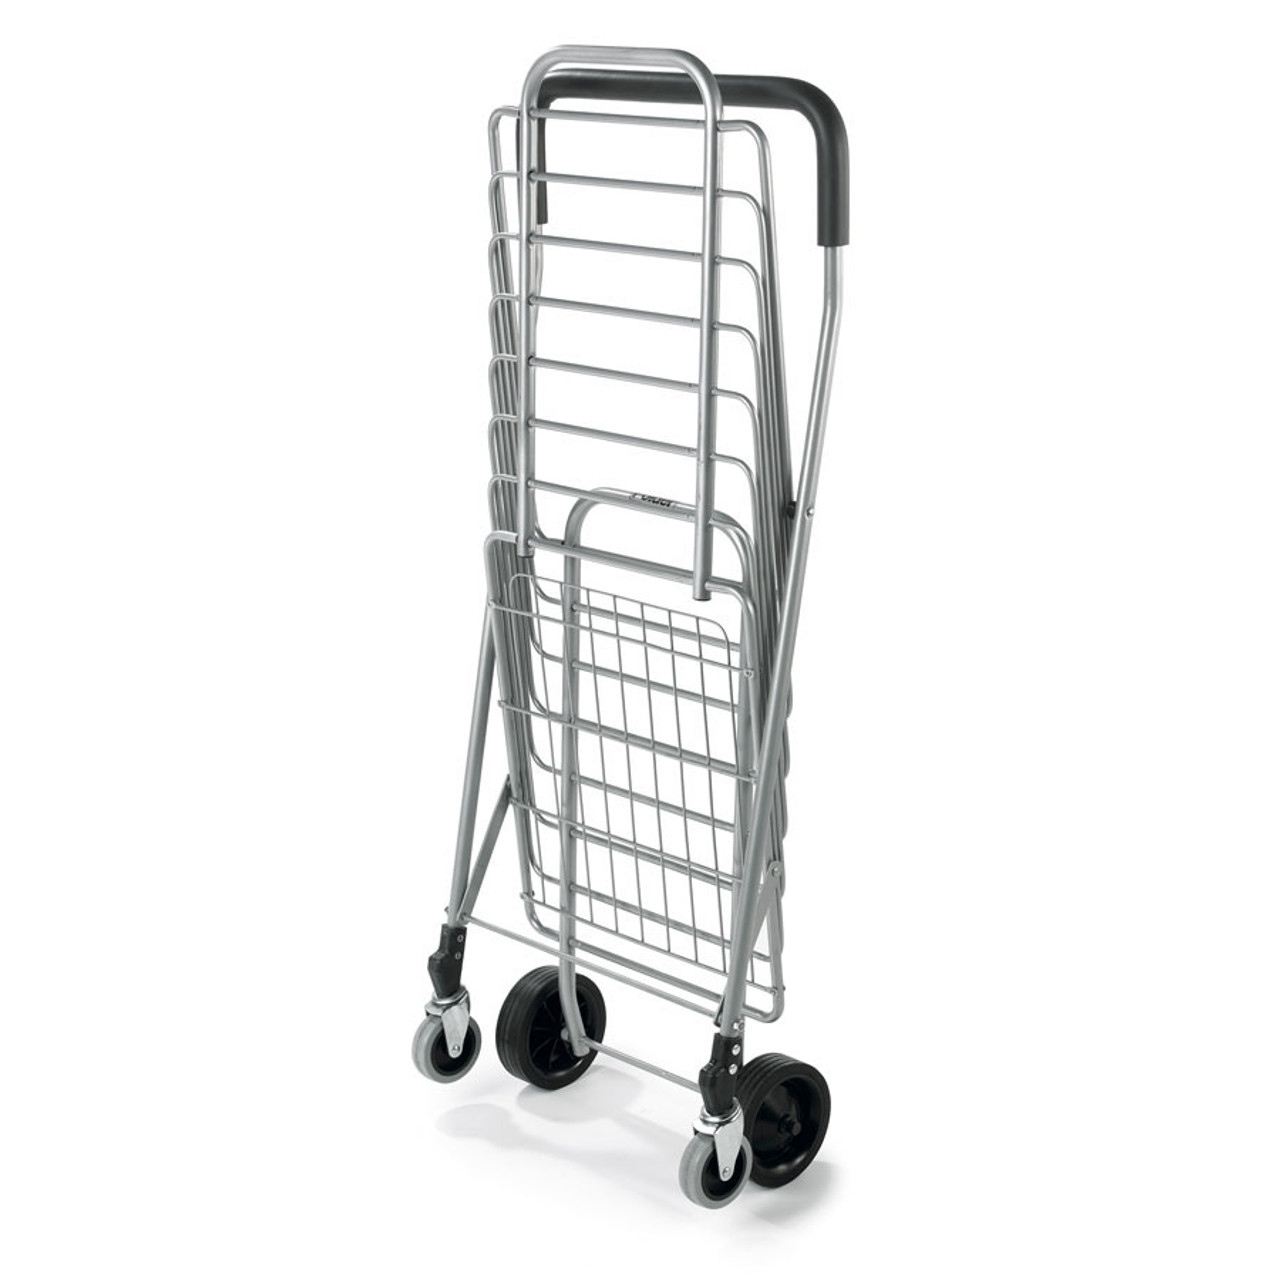 Lightweight Aluminum Cart - Folded